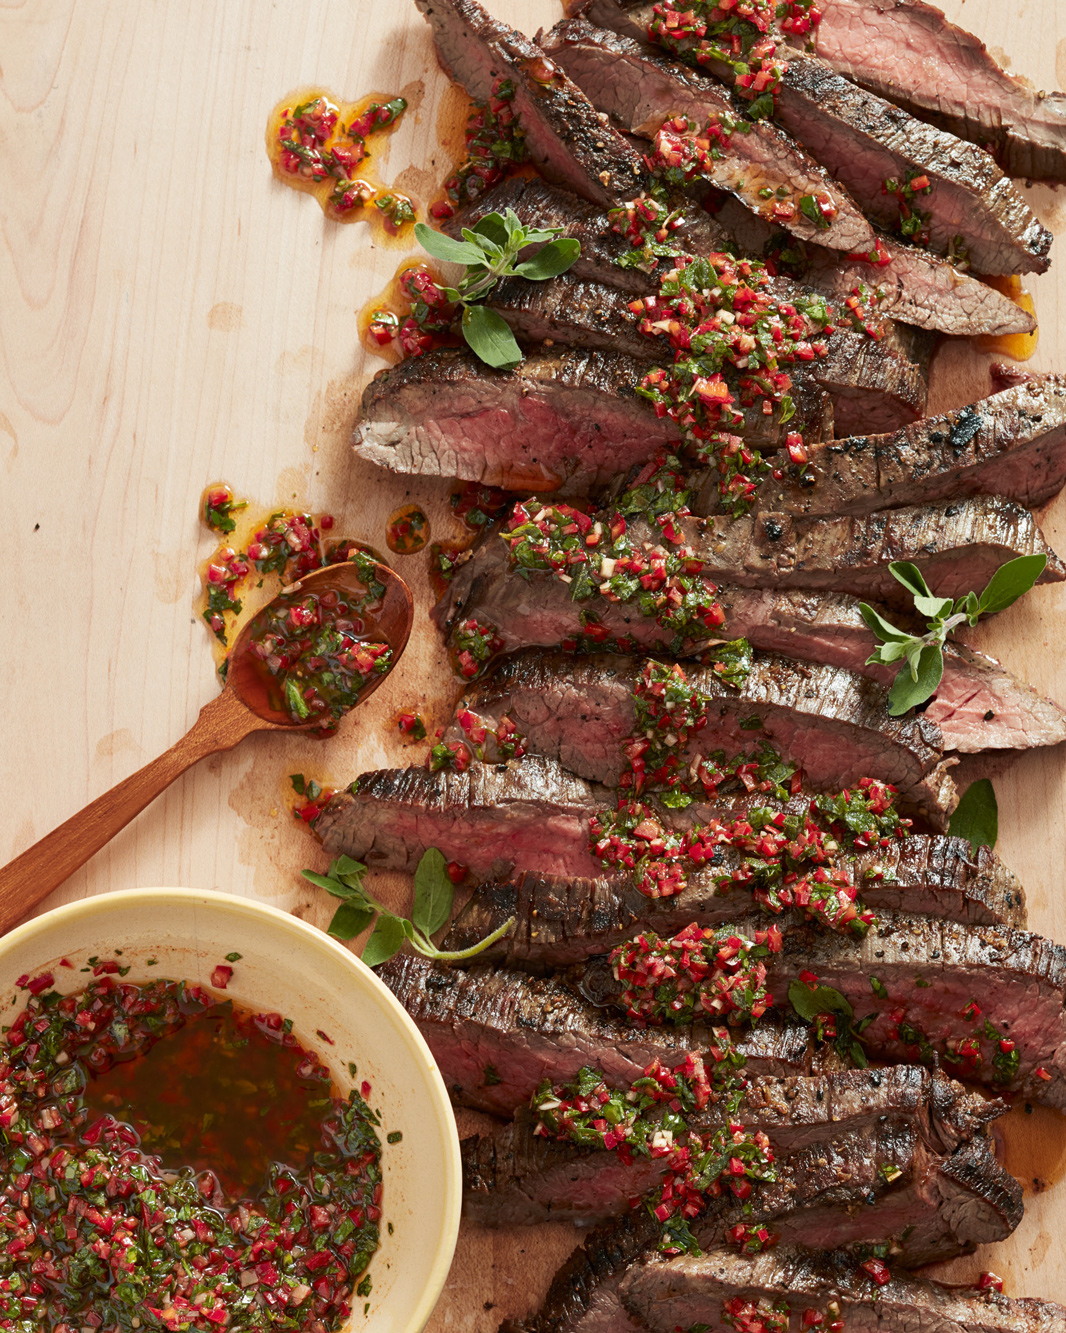 Grilled Flank Steak with Red Chimichurri